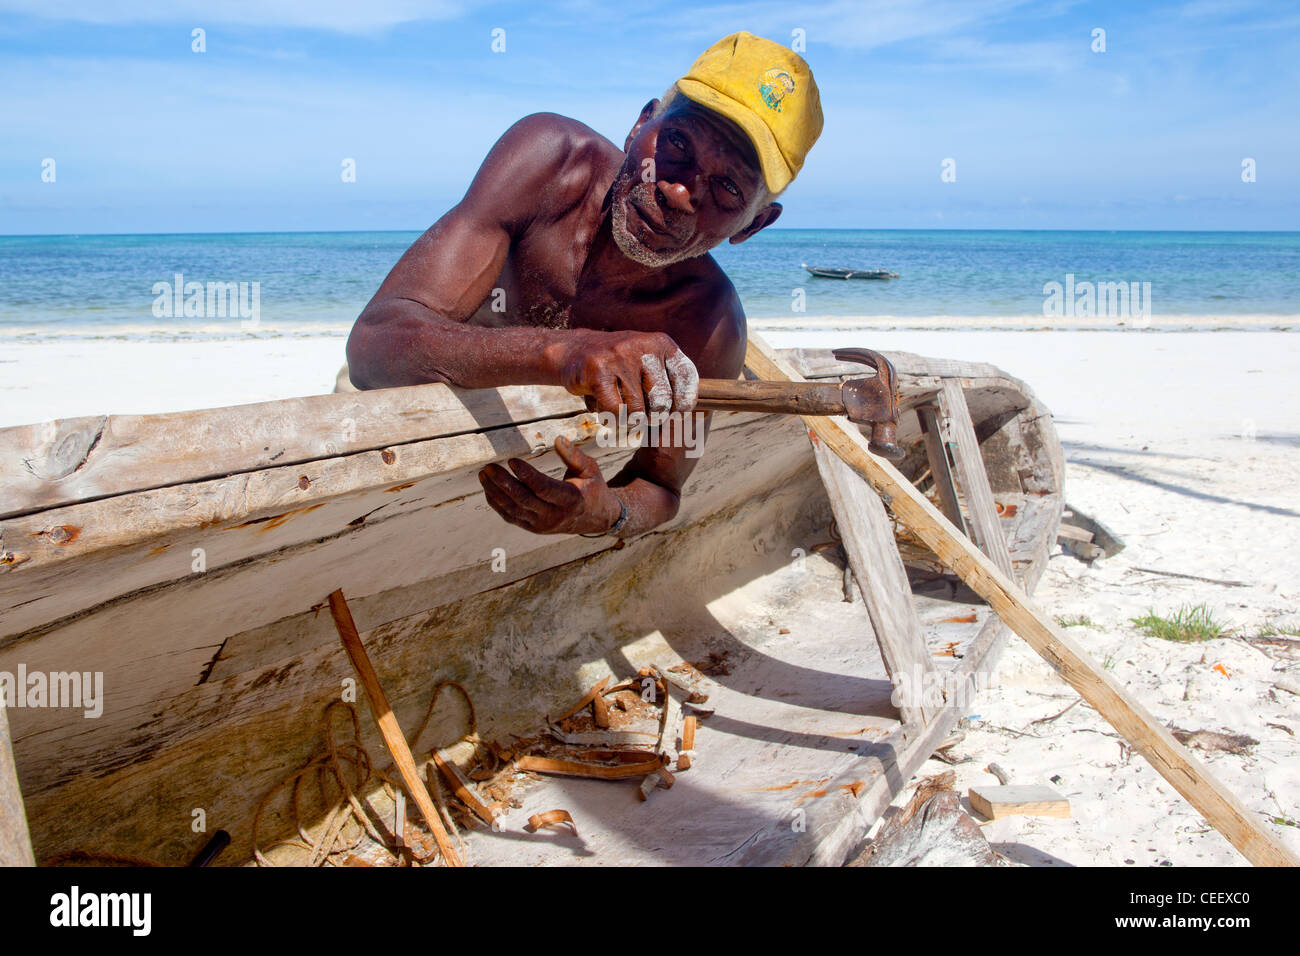 Old Zanzibari man repairing a wooden dhow on the beach at Bwejuu, Zanzibar Island, Tanzania - Stock Image